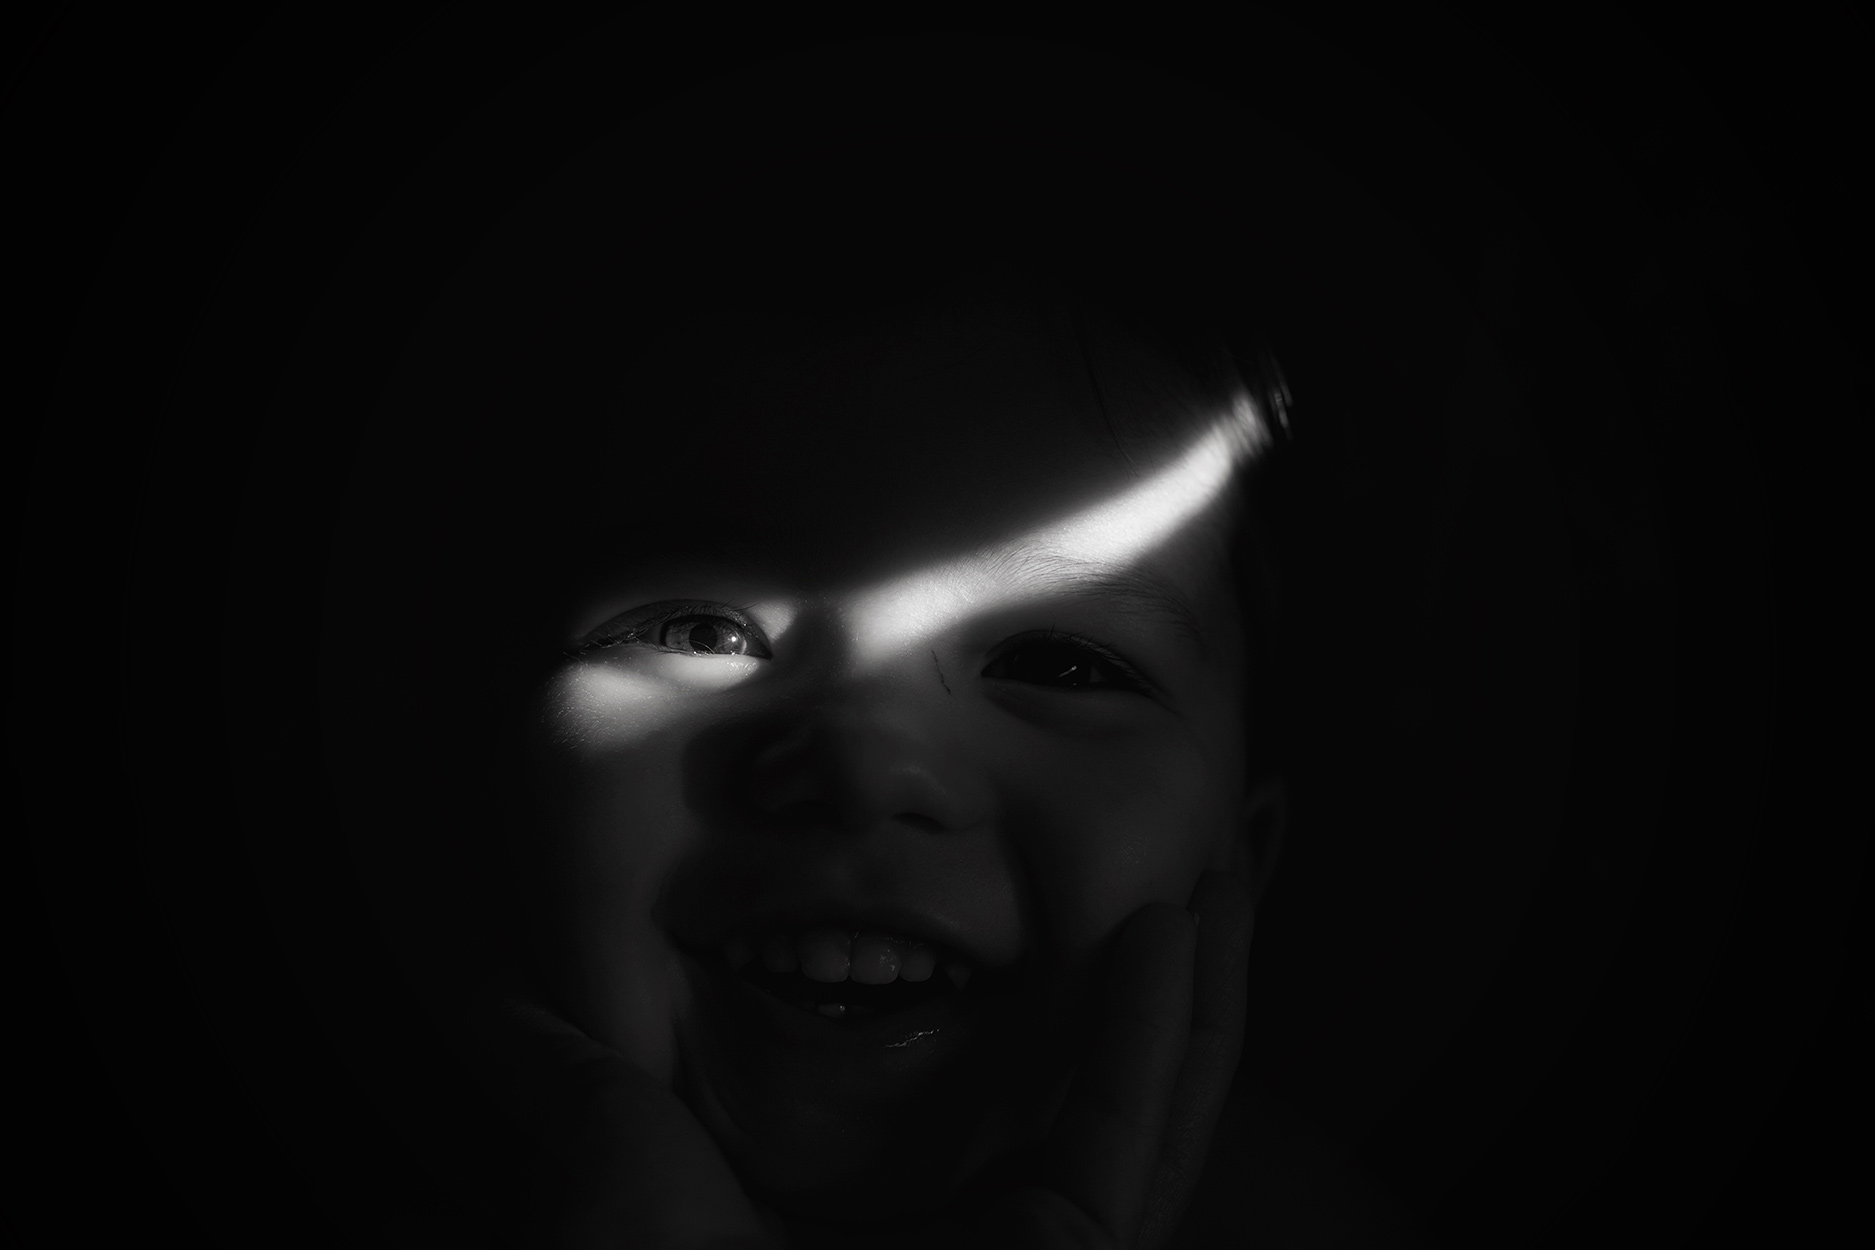 Candid family day in the life photoshoot   Portrait of toddler with eye in the ray of light in morning